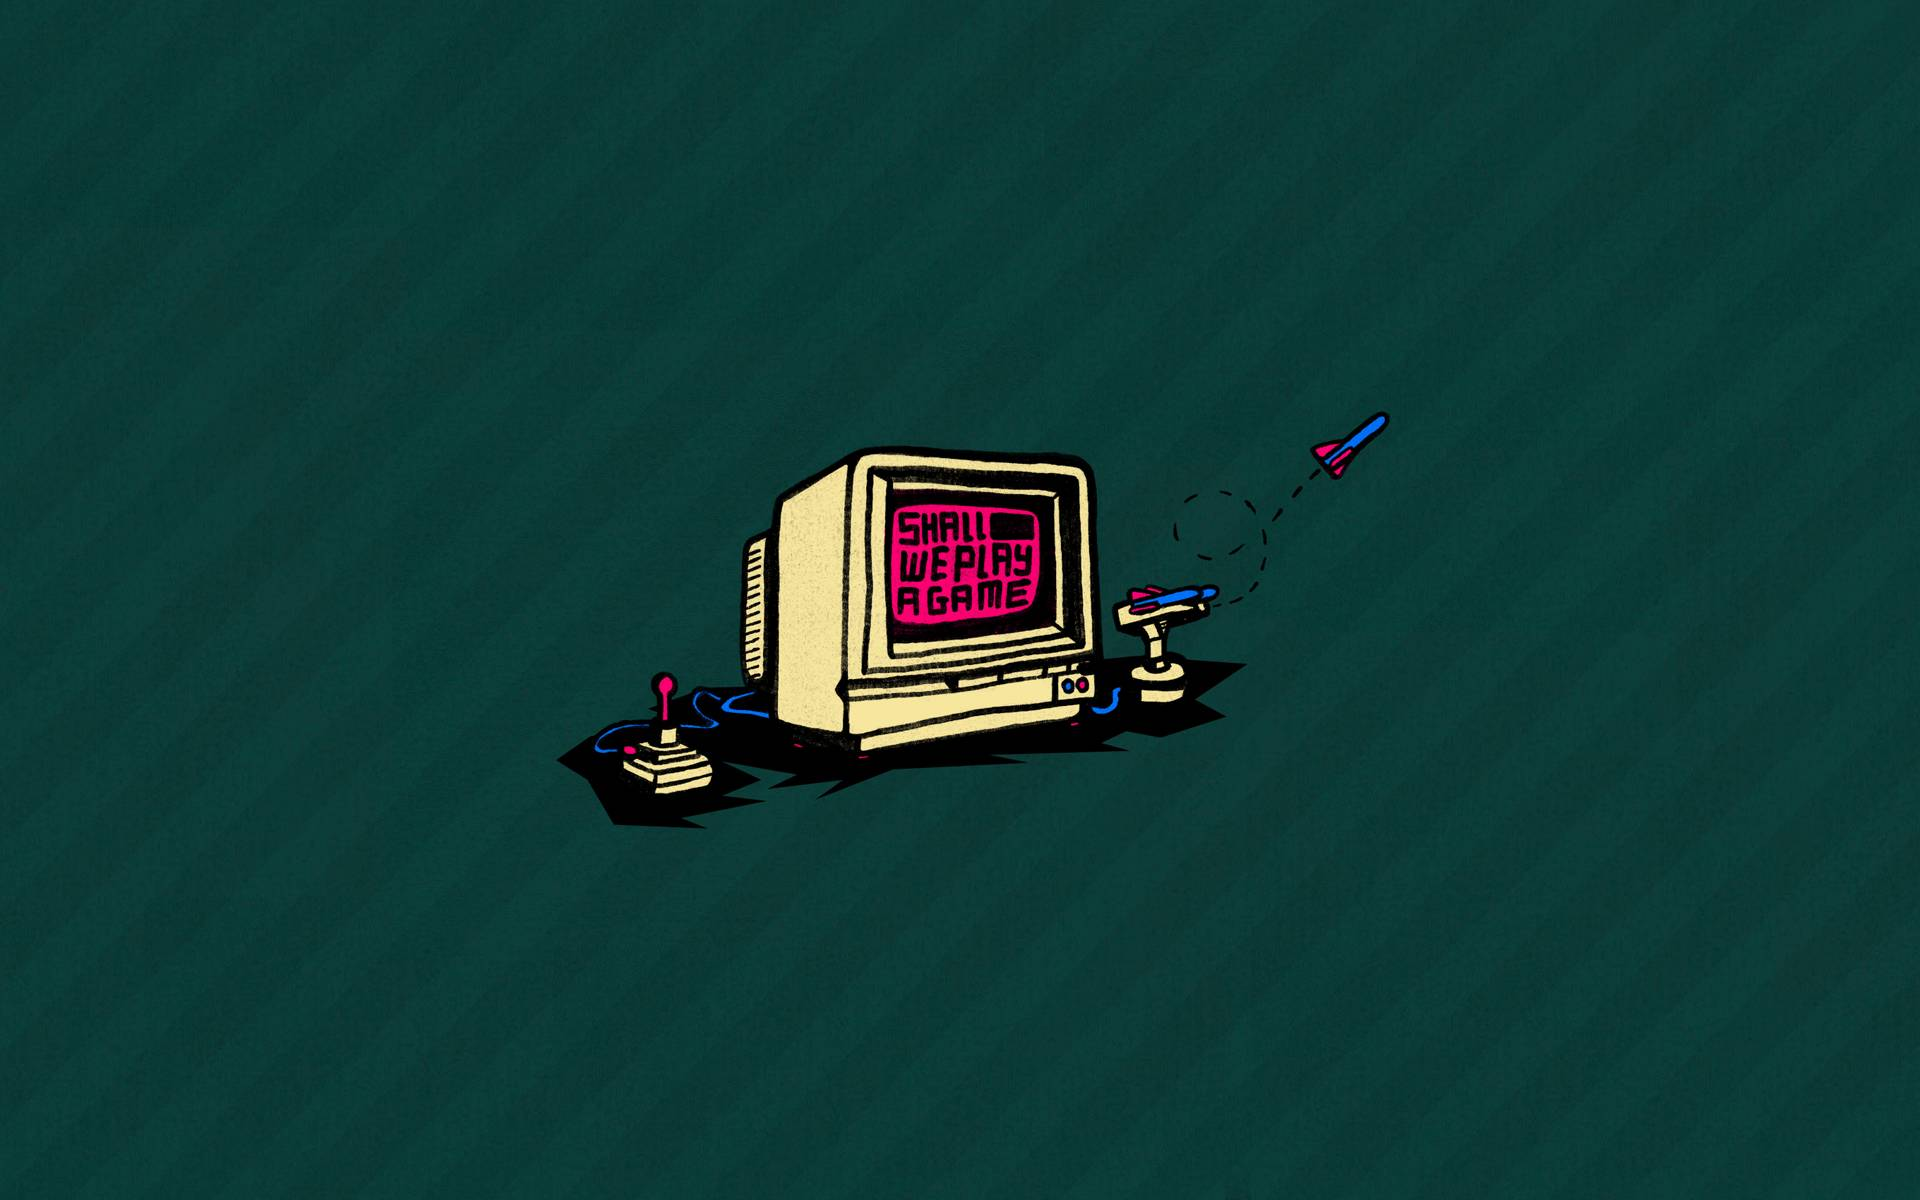 Retro Game Wallpapers   Top Retro Game Backgrounds 1920x1200